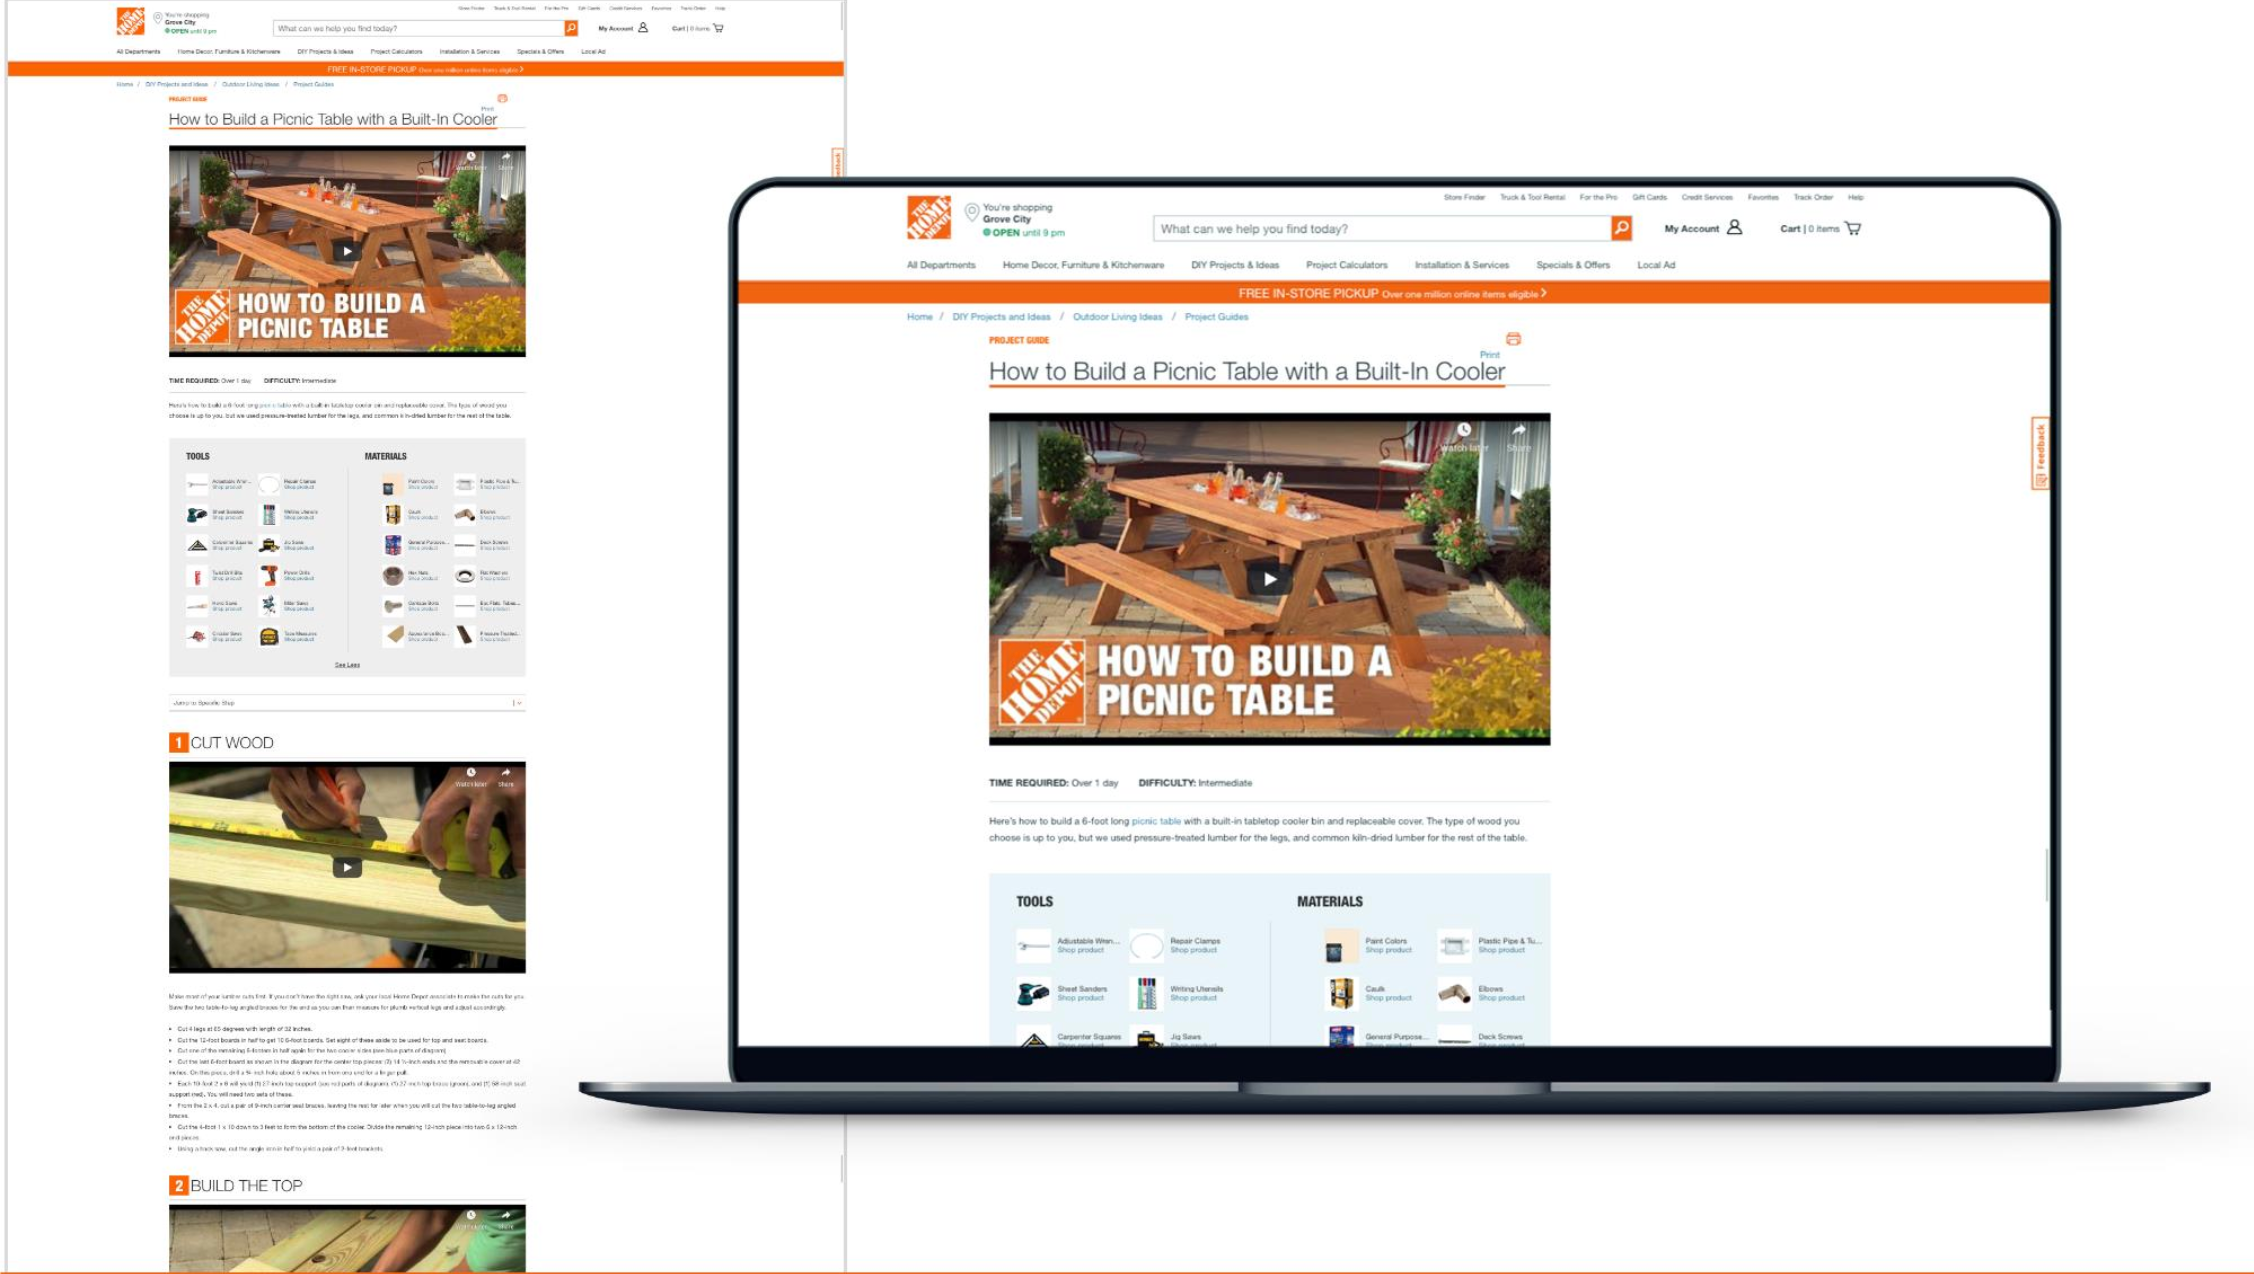 Image of The Home Depot's website - How to Build a Picnic Table with a Built-in Cooler